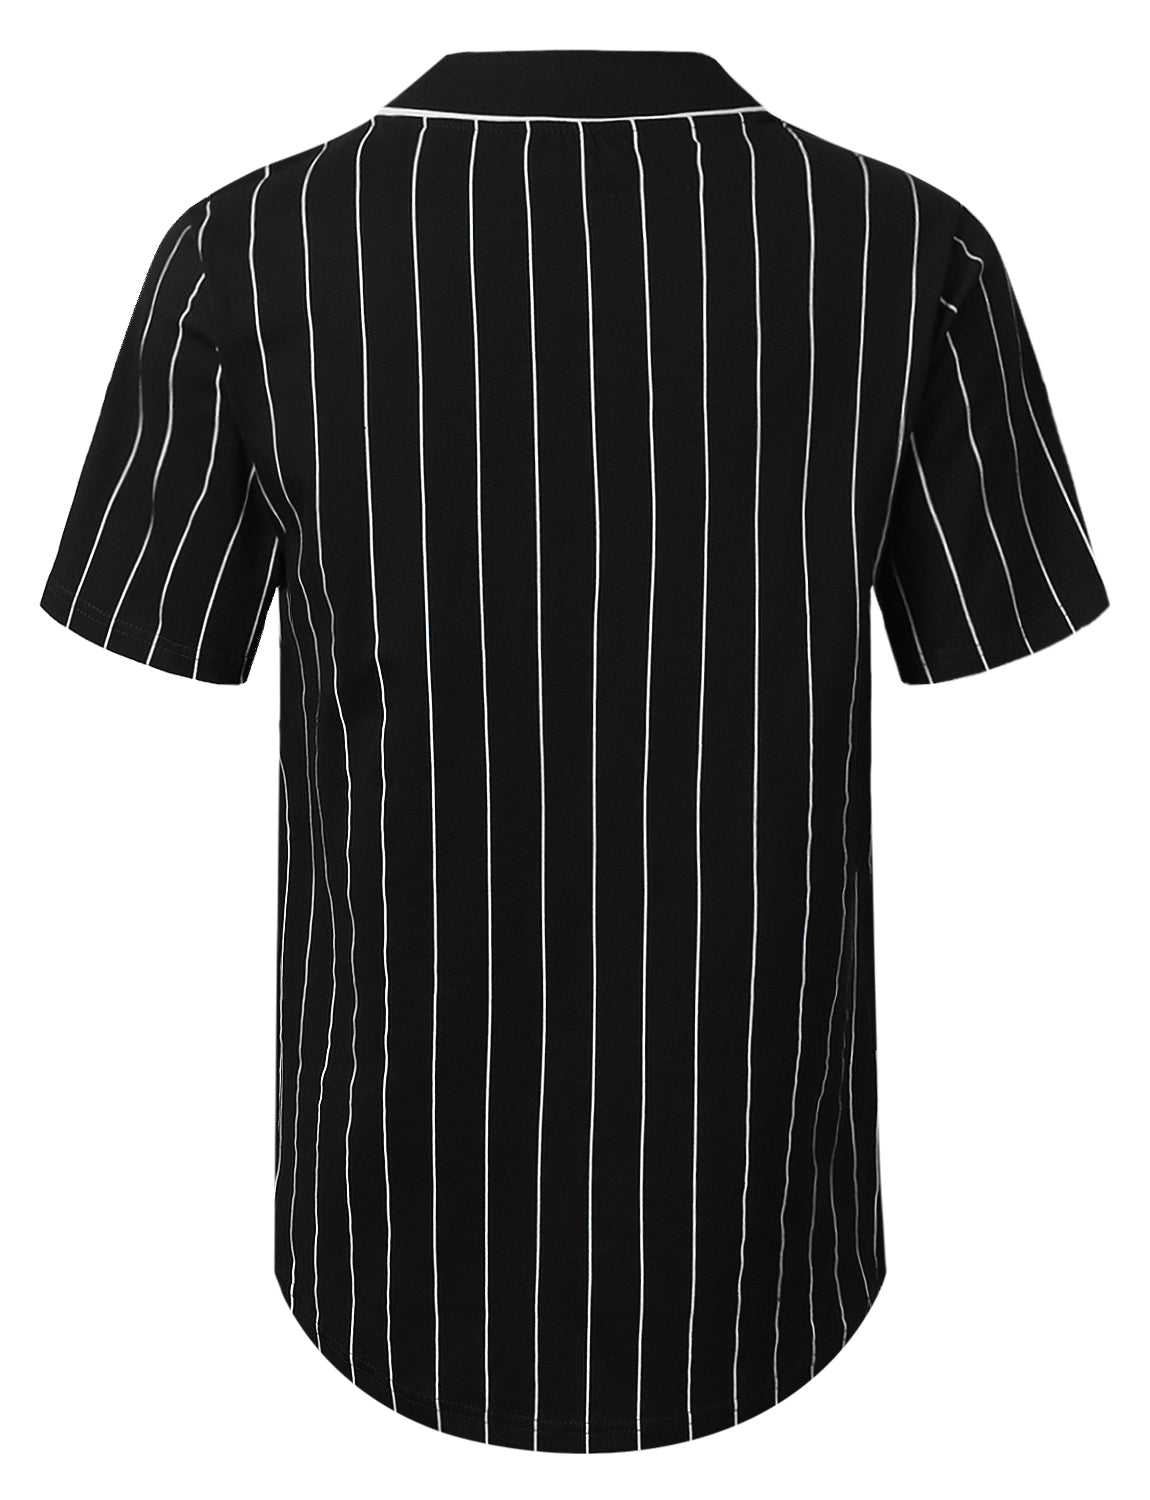 BLACK Striped Baseball Jersey Shirt - URBANCREWS